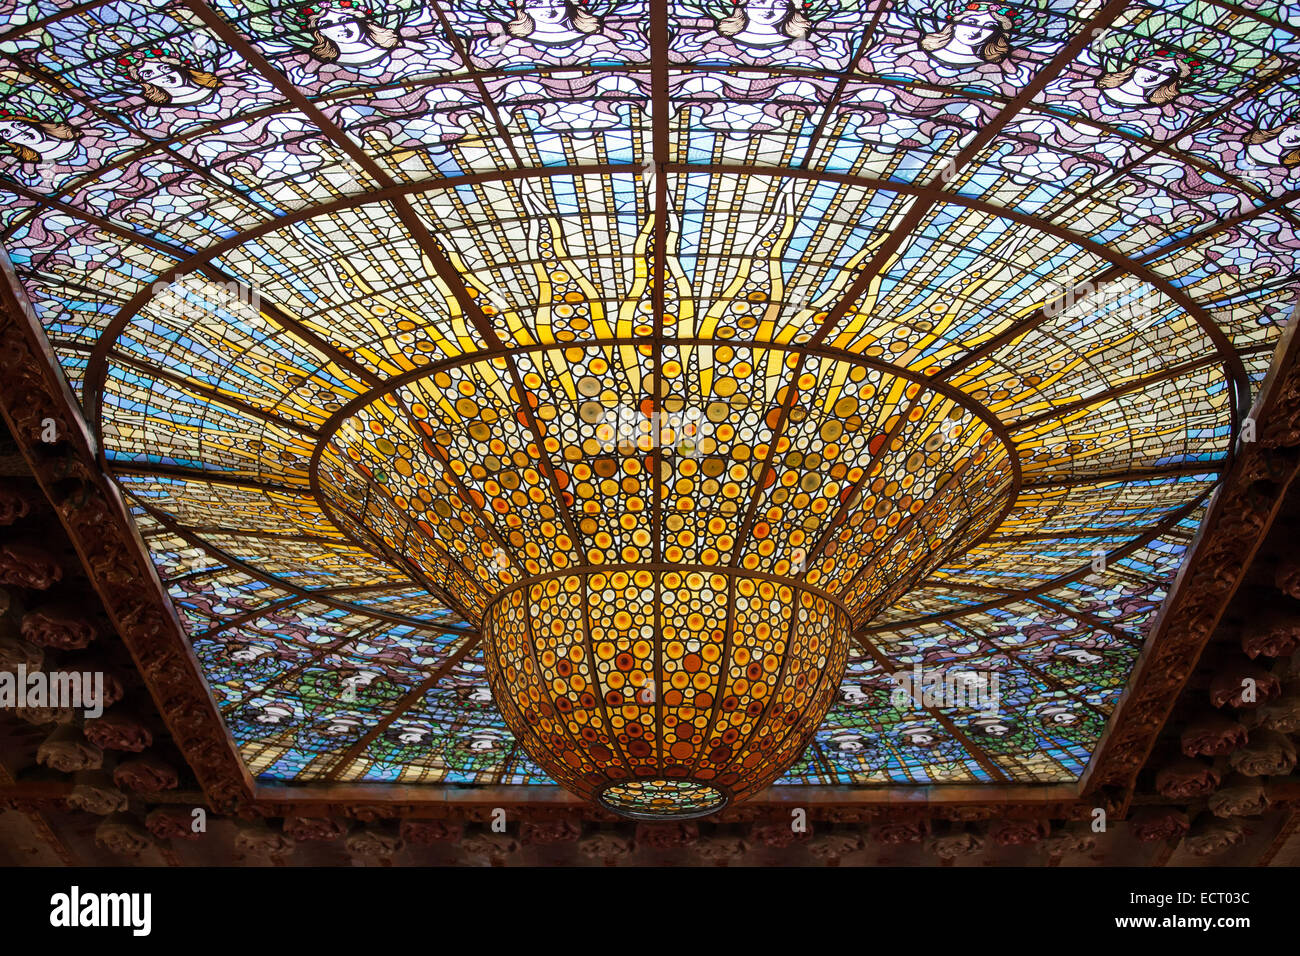 Barcelona Catalonia Spain Stained Glass Skylight